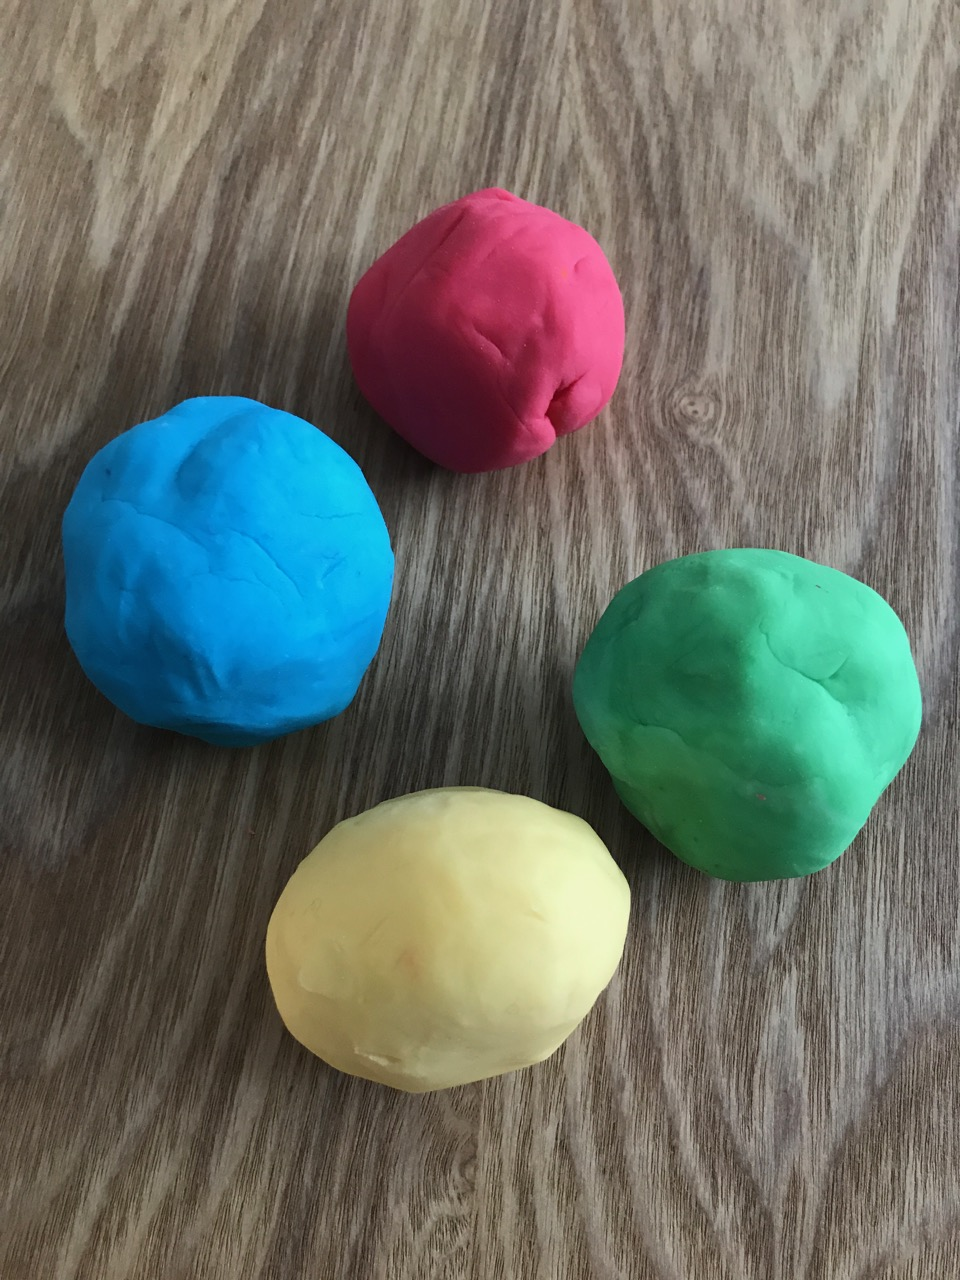 Les Petits Painters art and craft lessons for kids, how to make play dough, easy and cheap play dough, gluten free play dough, fine motor skills development for preschoolers